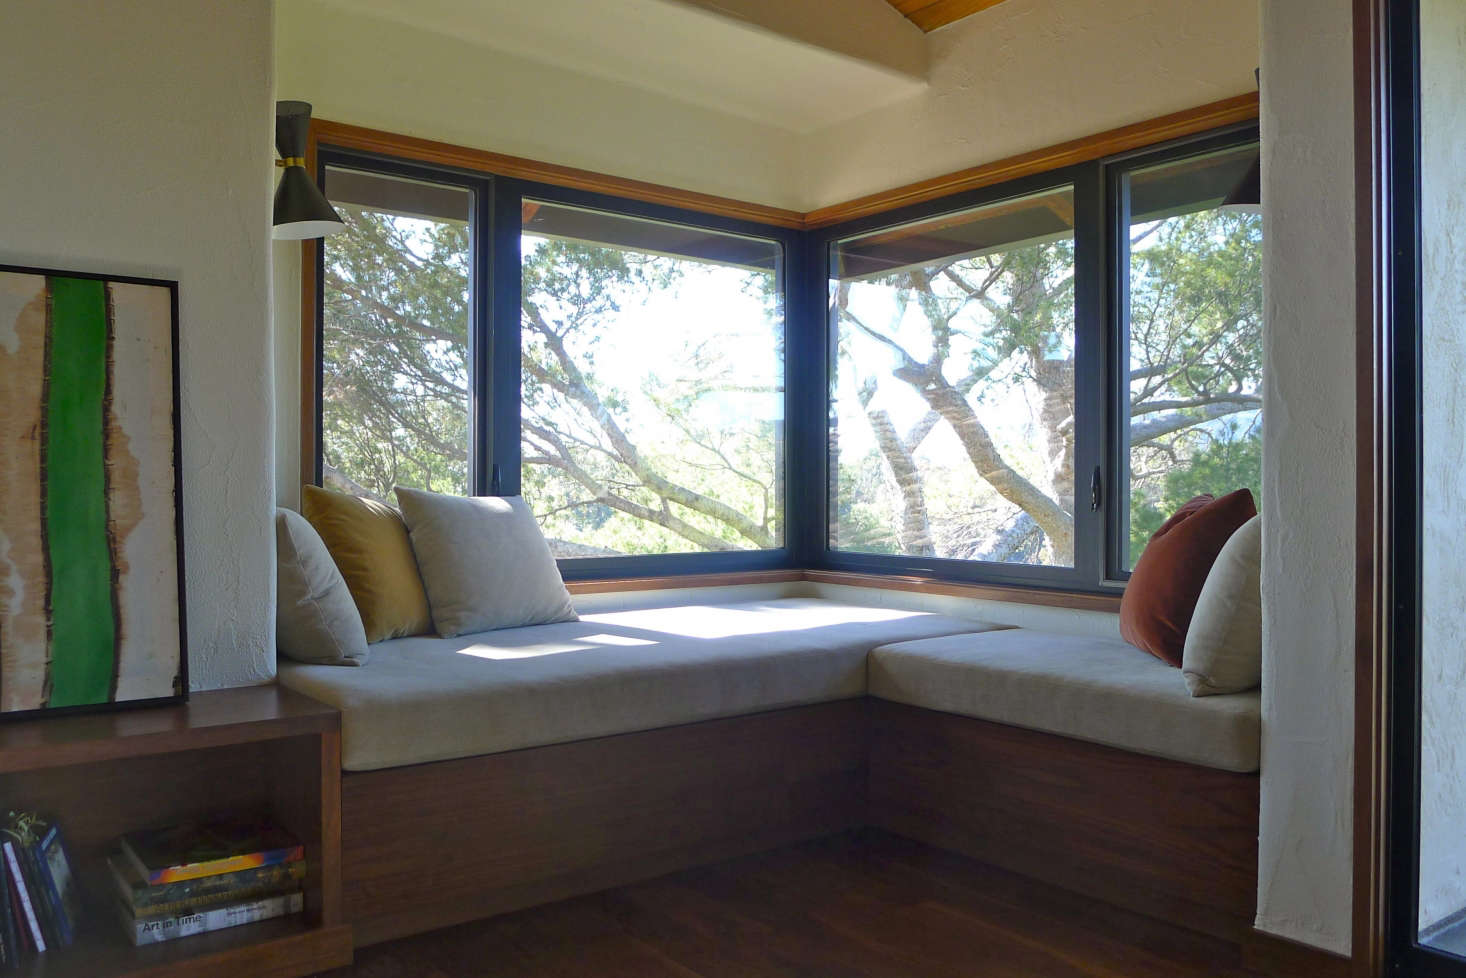 Master Bedroom Suite, Pacific Palisades: This deep window seat was designed to make the most of the spectacular view. The bookshelves on the left aresized for a large collection of art books, and the surface is made for leaning artwork and as a pedestal for sculpture. Photo: Laura Clayton Baker